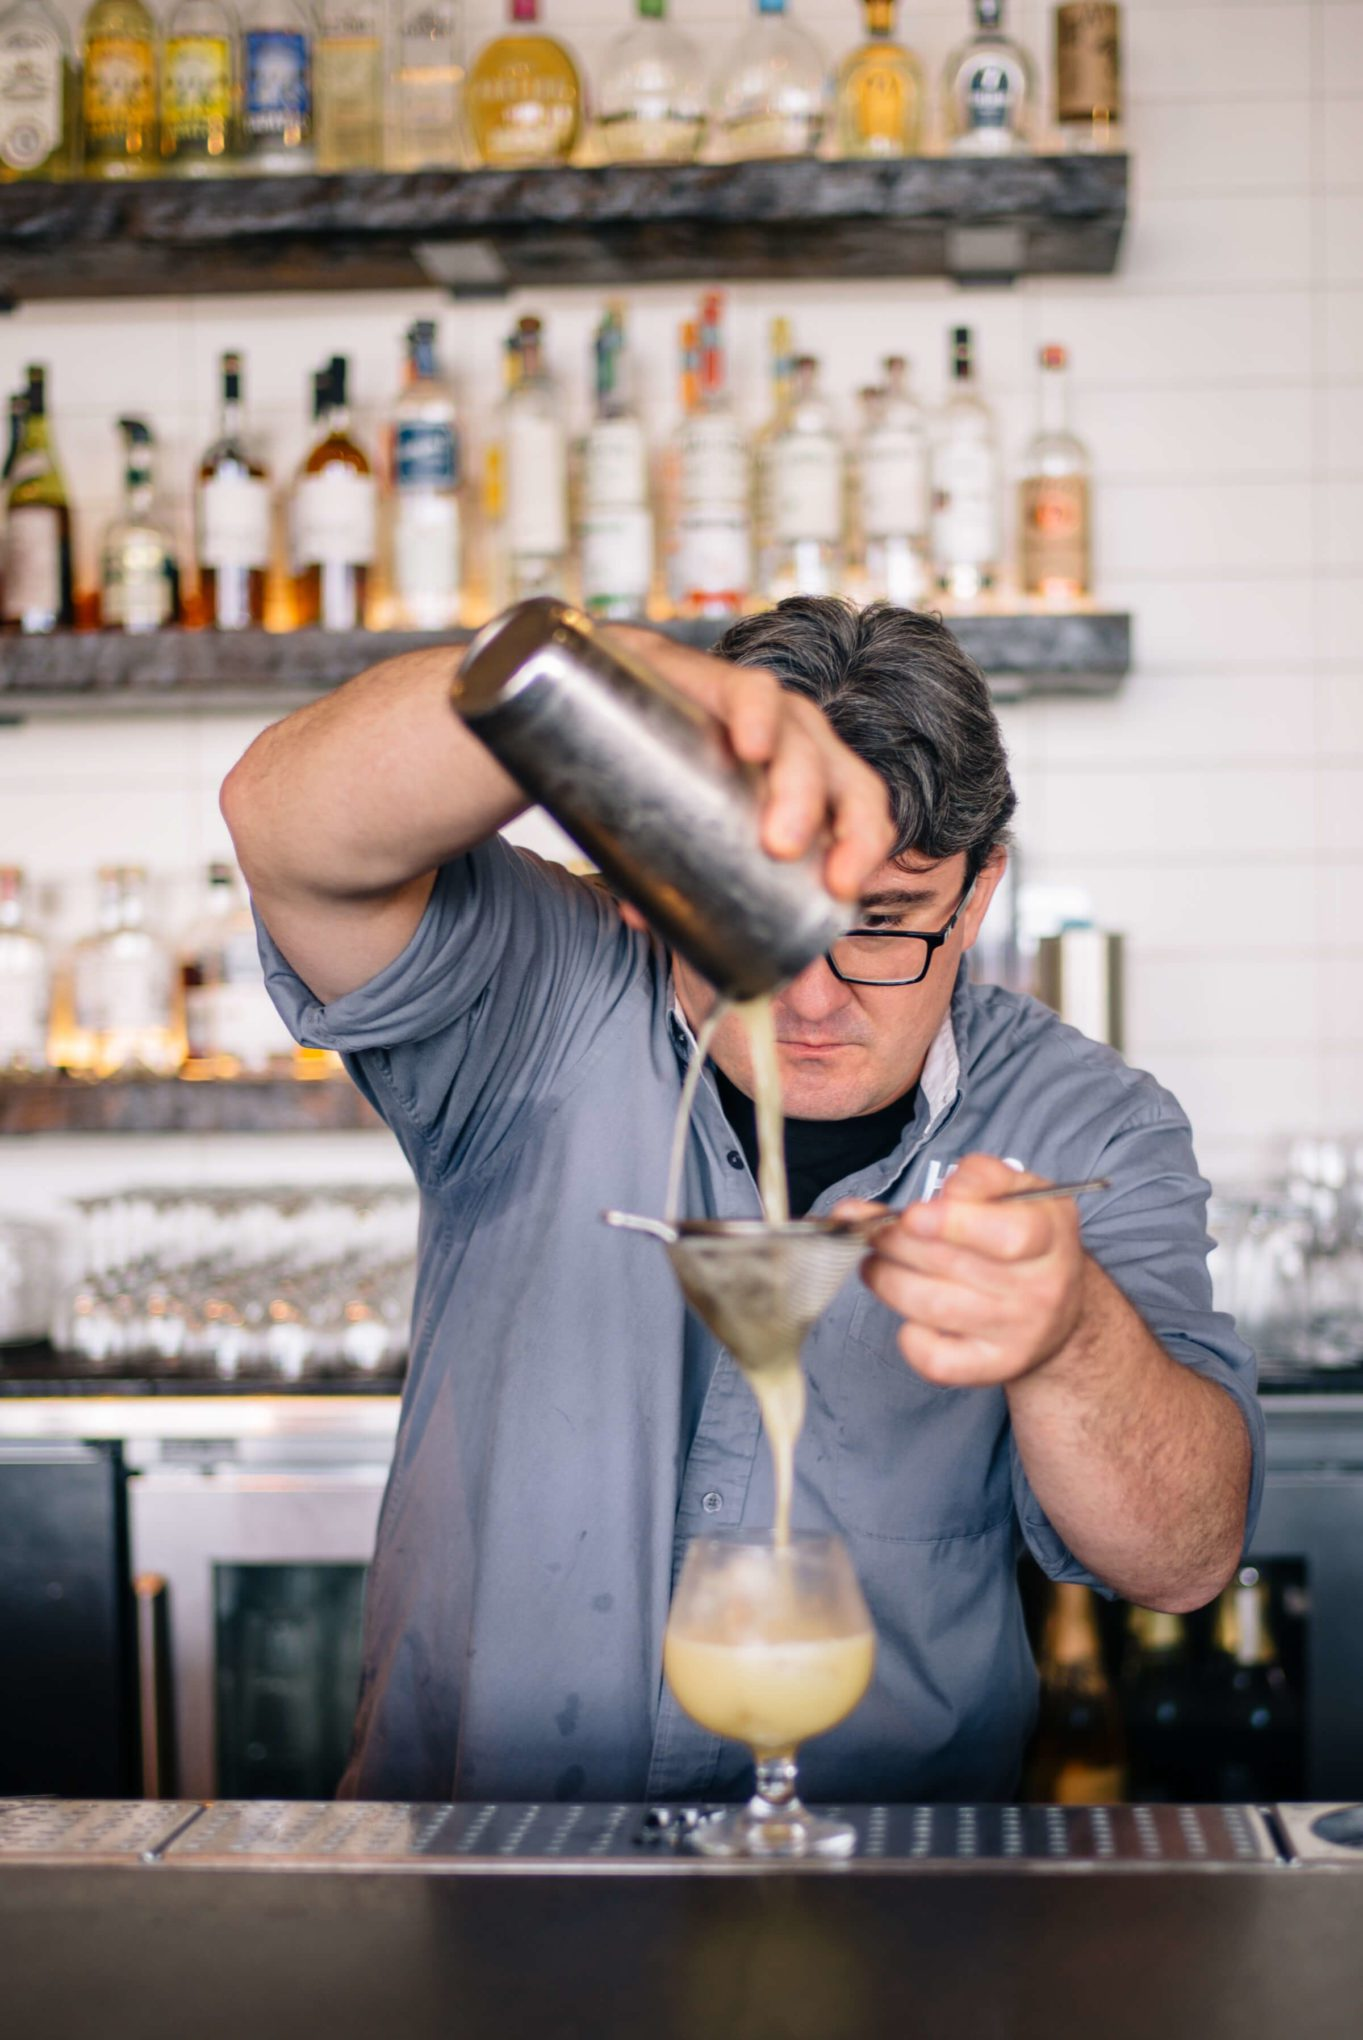 Straining the cocktail for a San Francisco Summer Cocktails: Hog Island Saul Ranella Sacred Cenote Mezcal Amaro Cocktail Recipe, restaurant recipe, The Taste SF